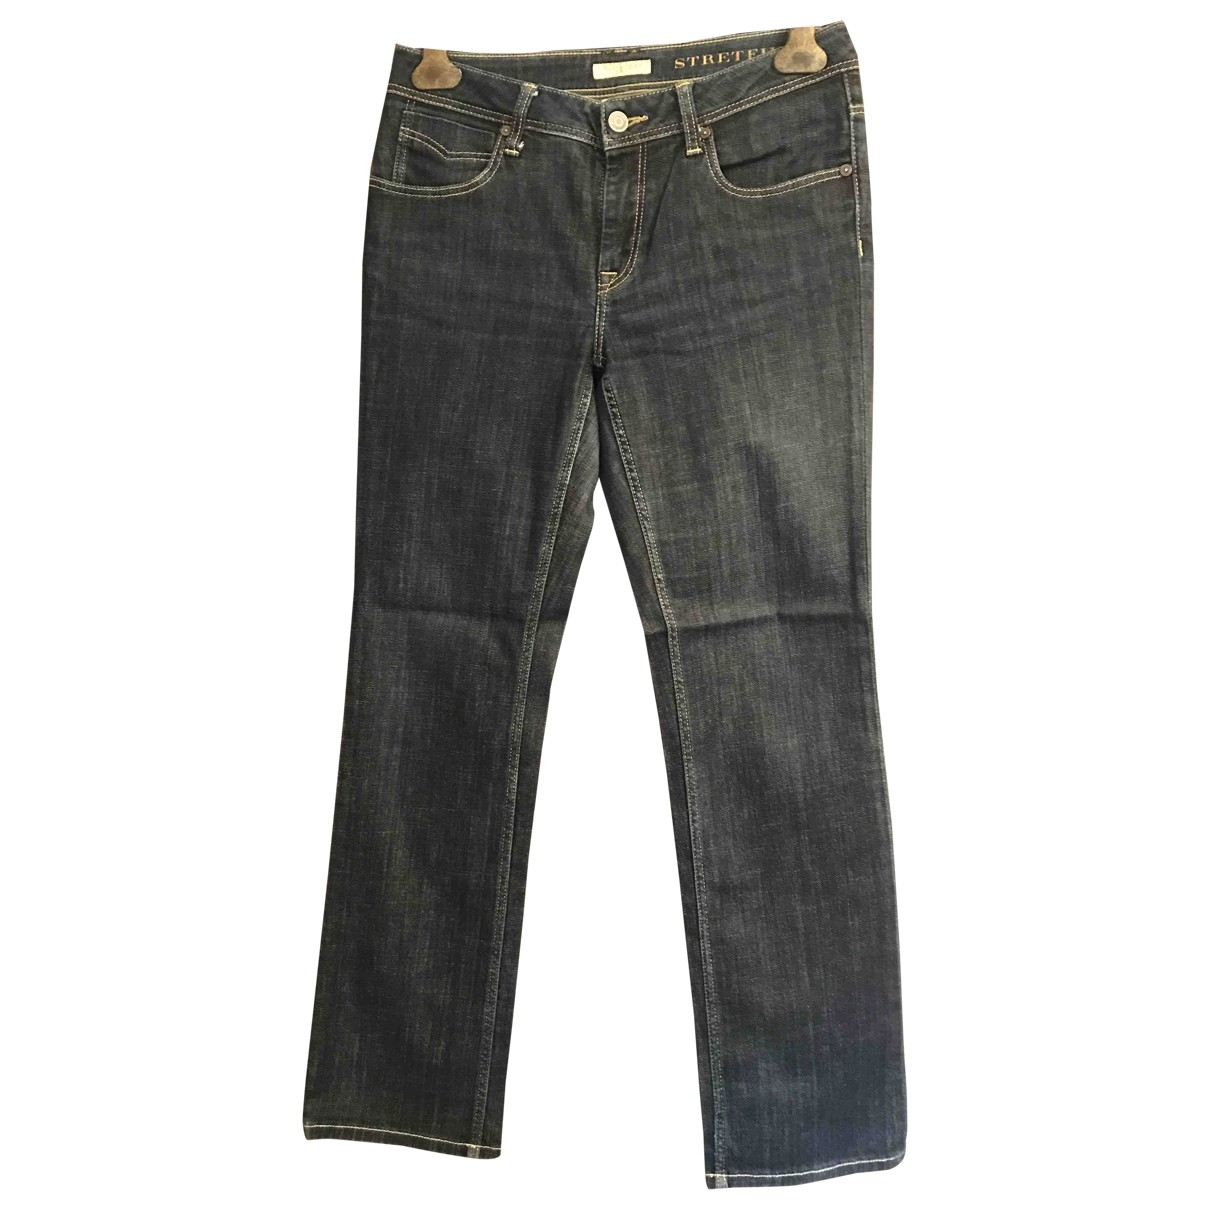 Burberry \N Blue Cotton - elasthane Jeans for Women 29 US